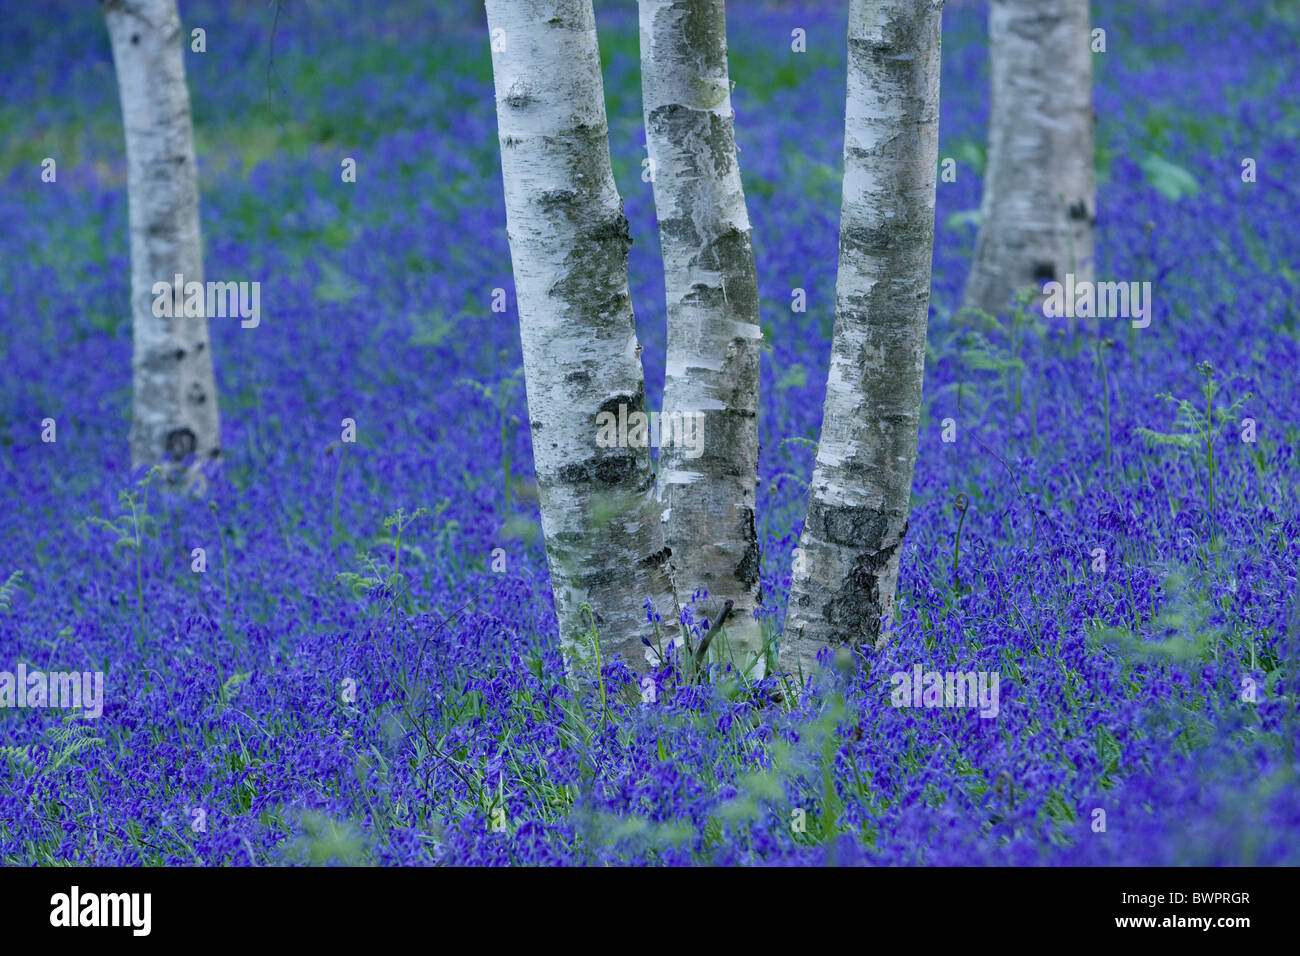 Bluebells bluebell wood silver birch abstract fantasy - Stock Image